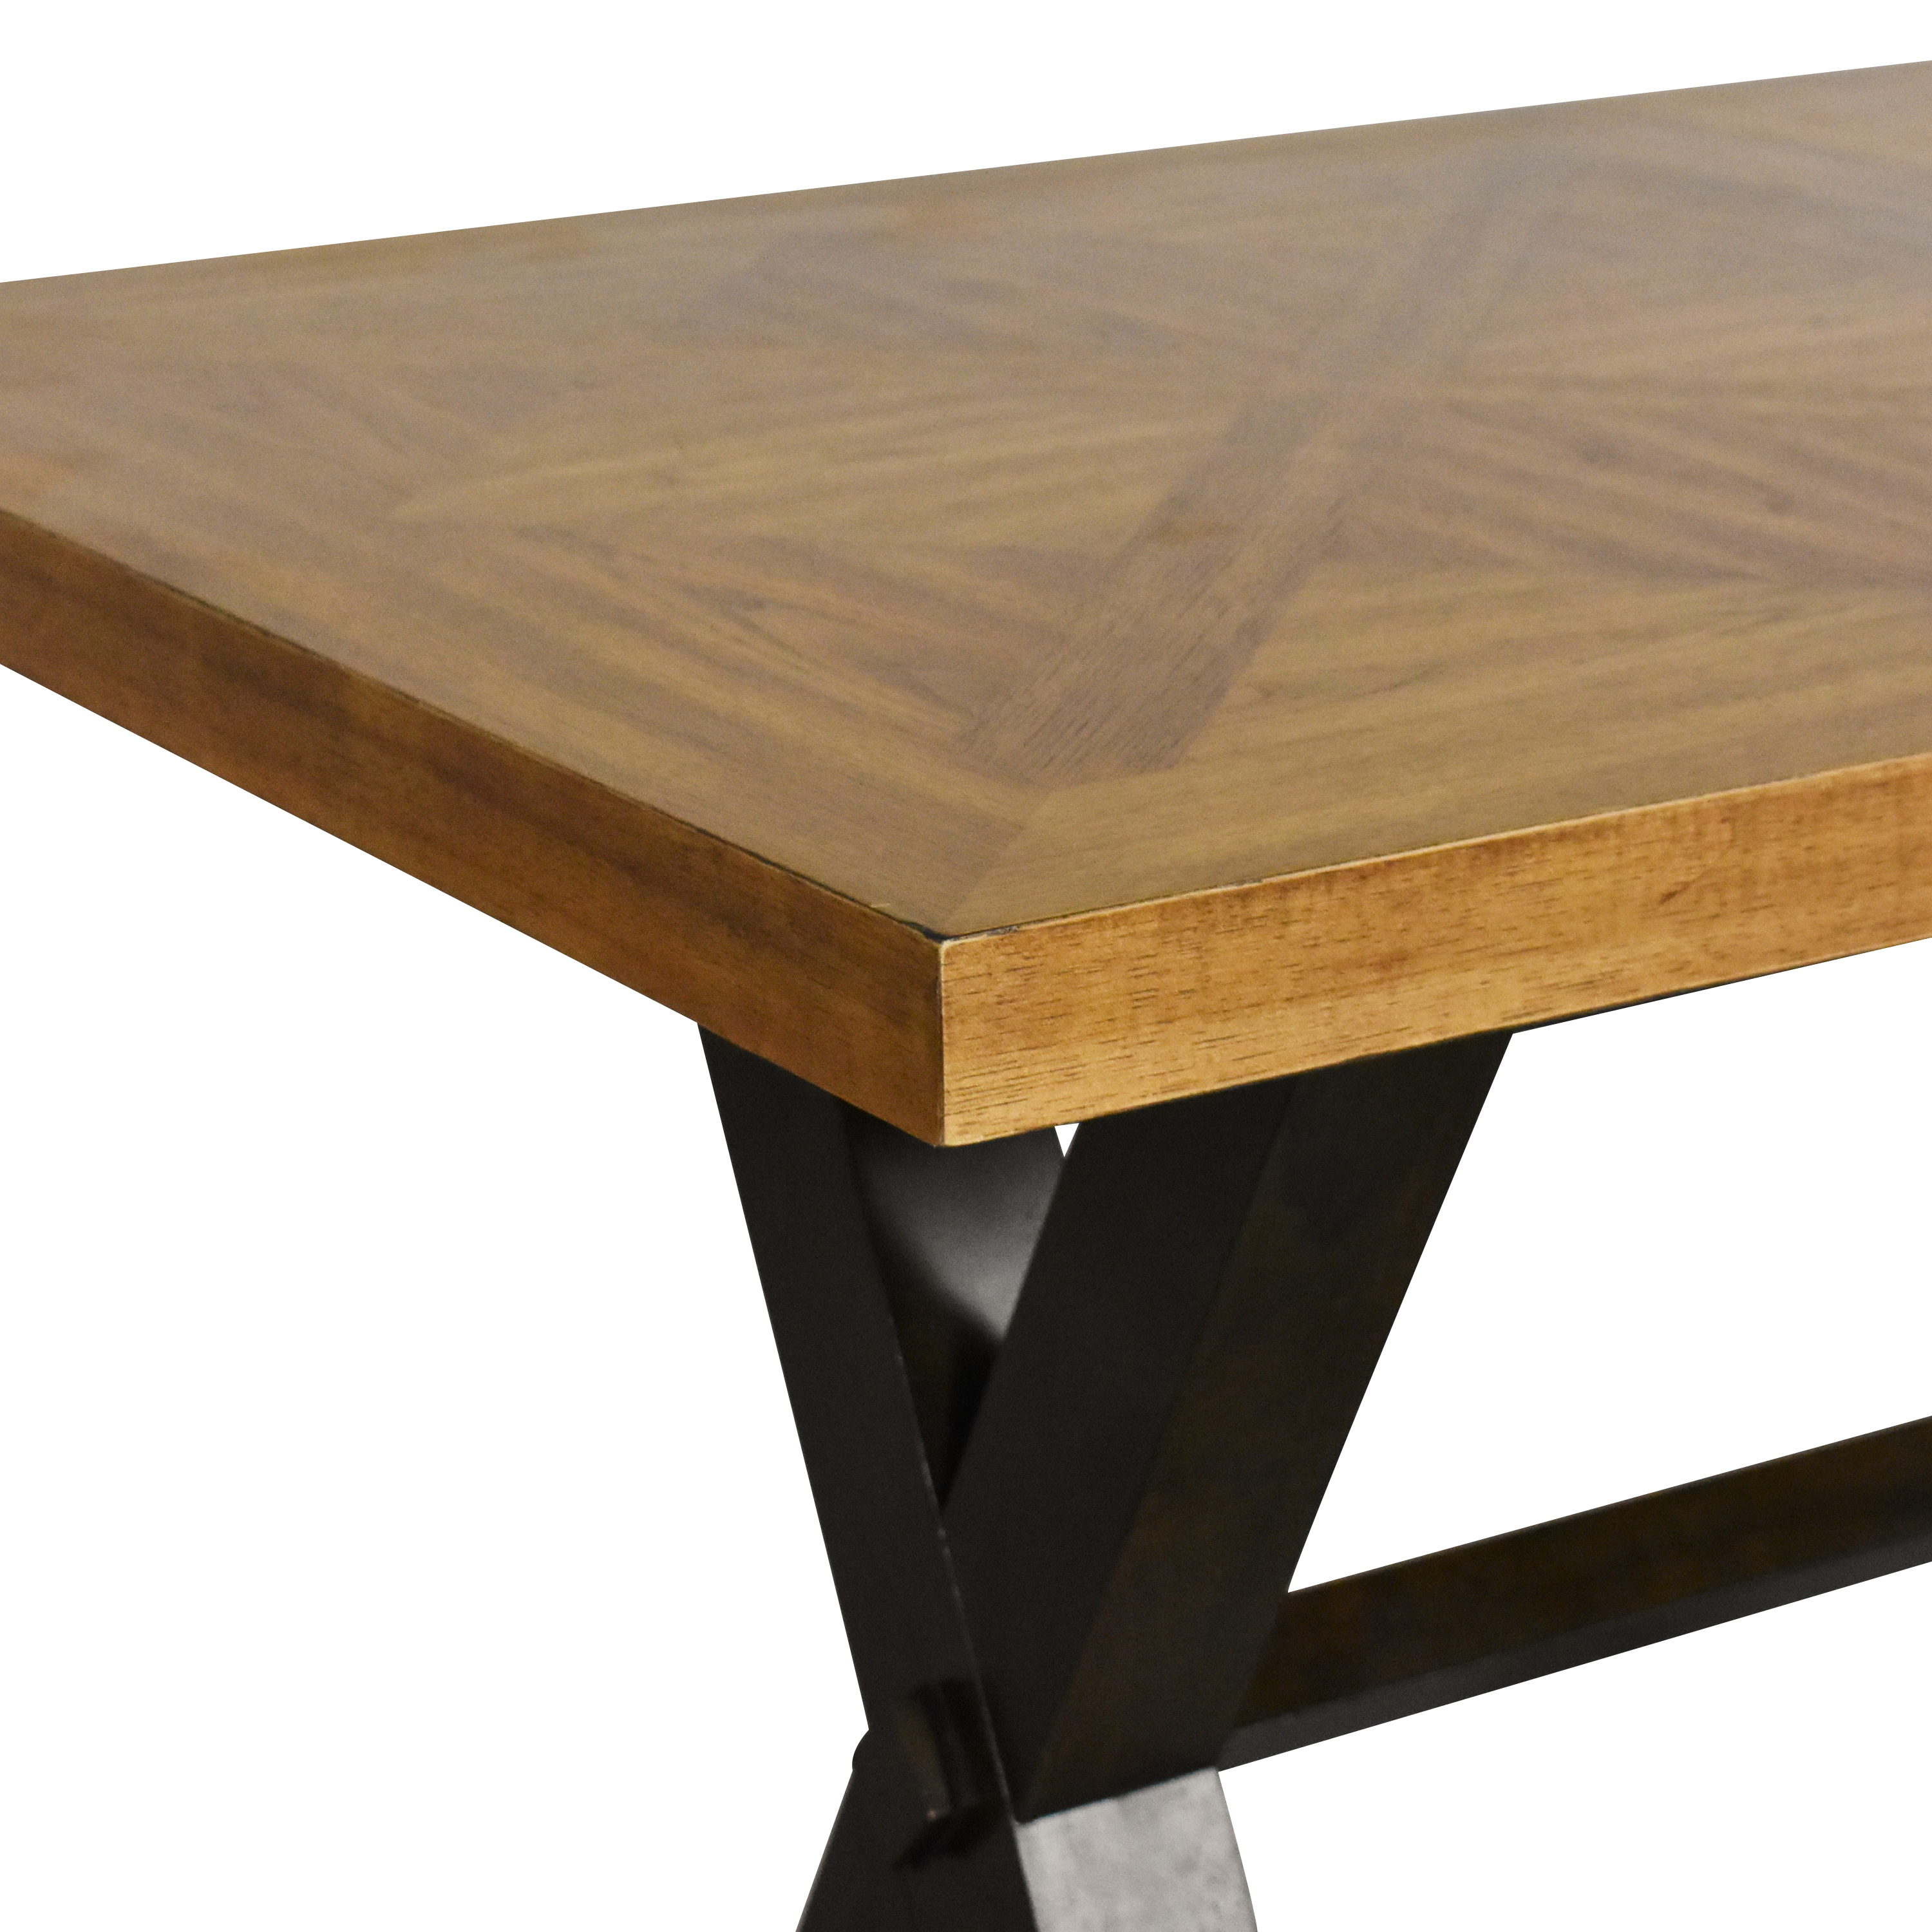 Raymour & Flanigan  Raymour & Flanigan Wexford Counter Height Dining Table used